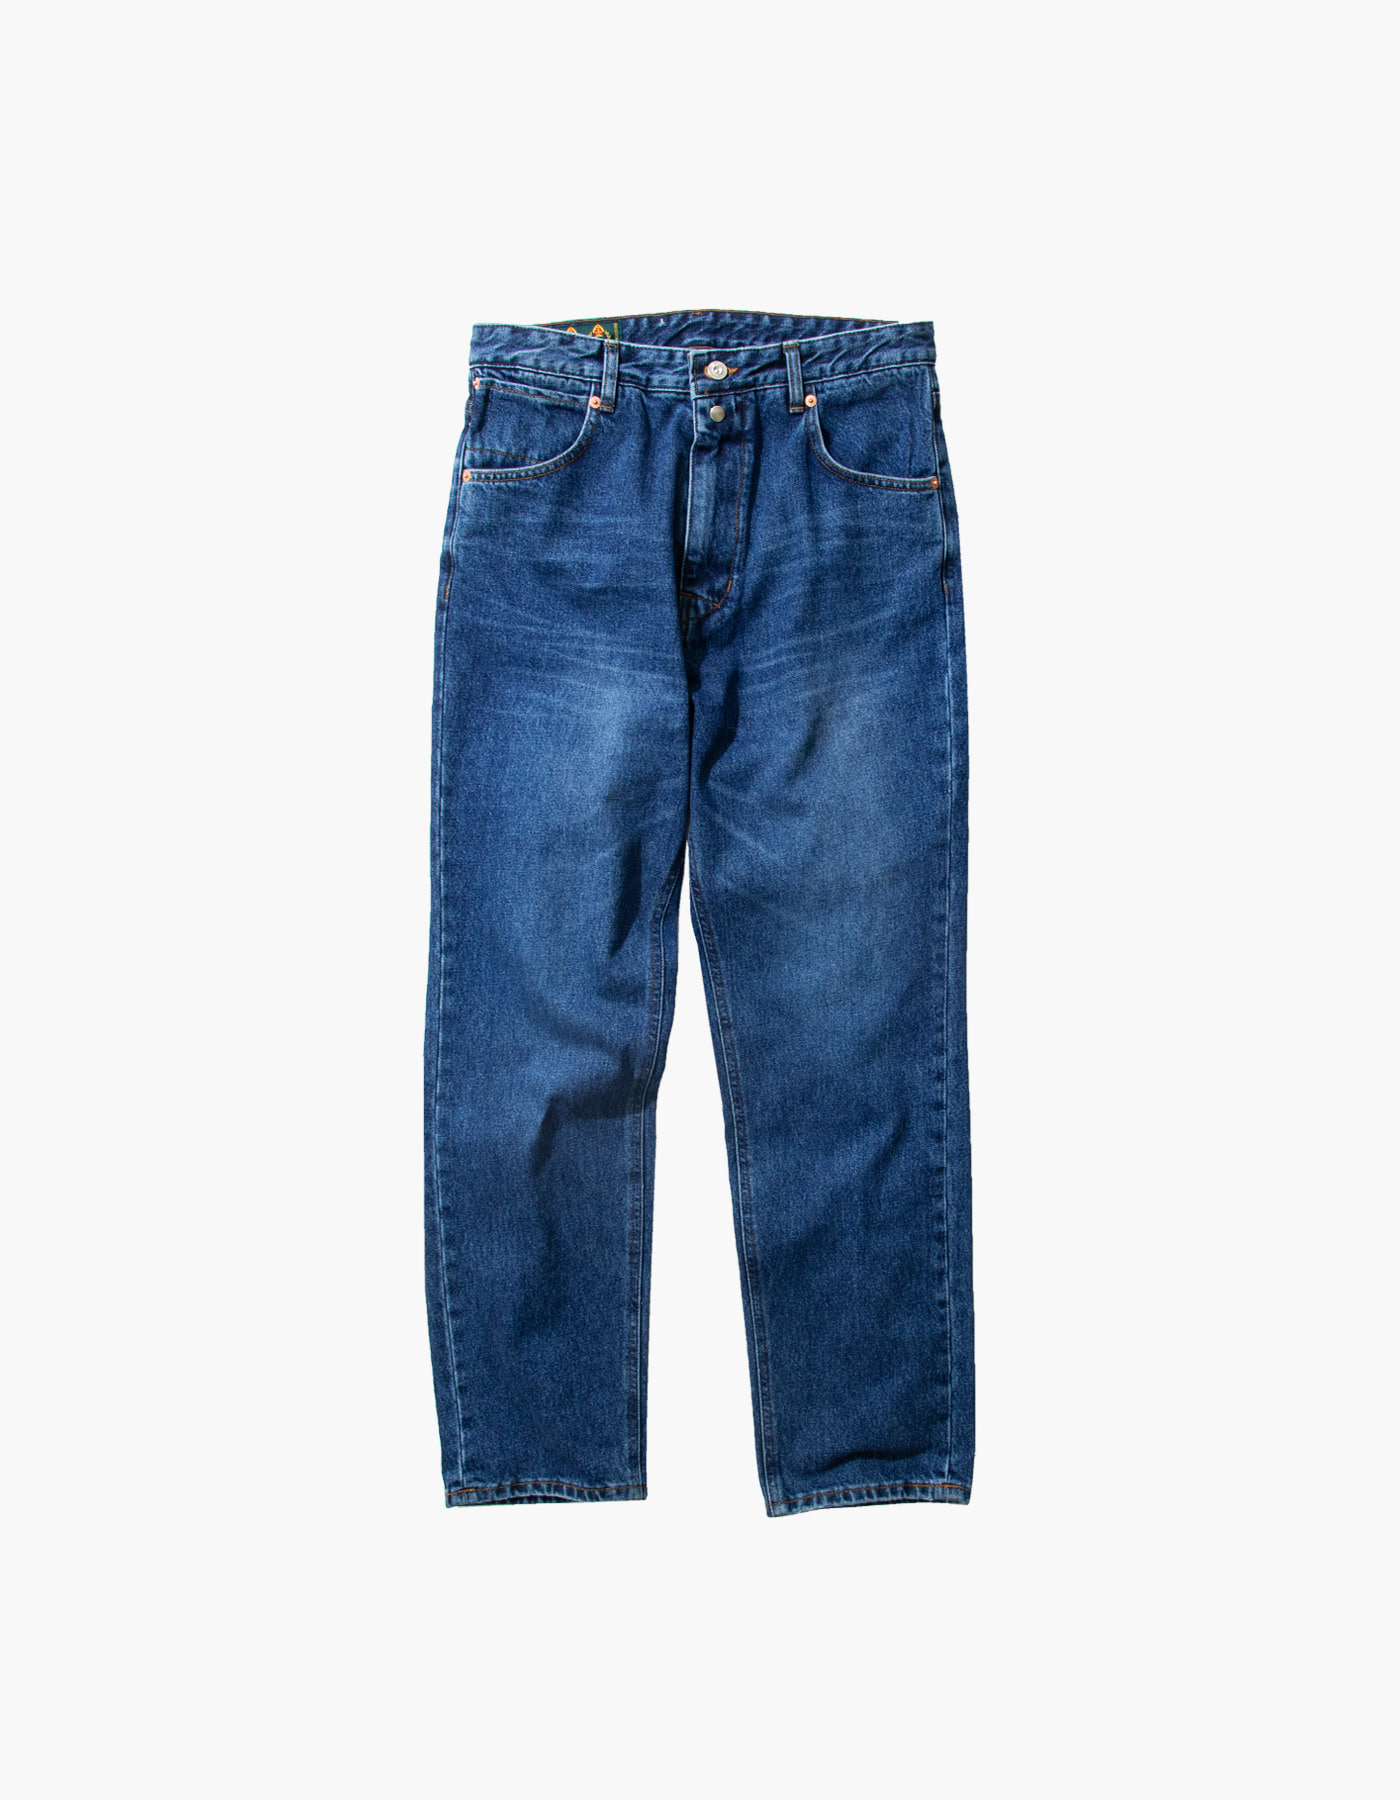 STONE WASHED BAGGY PANTS / INDIGO